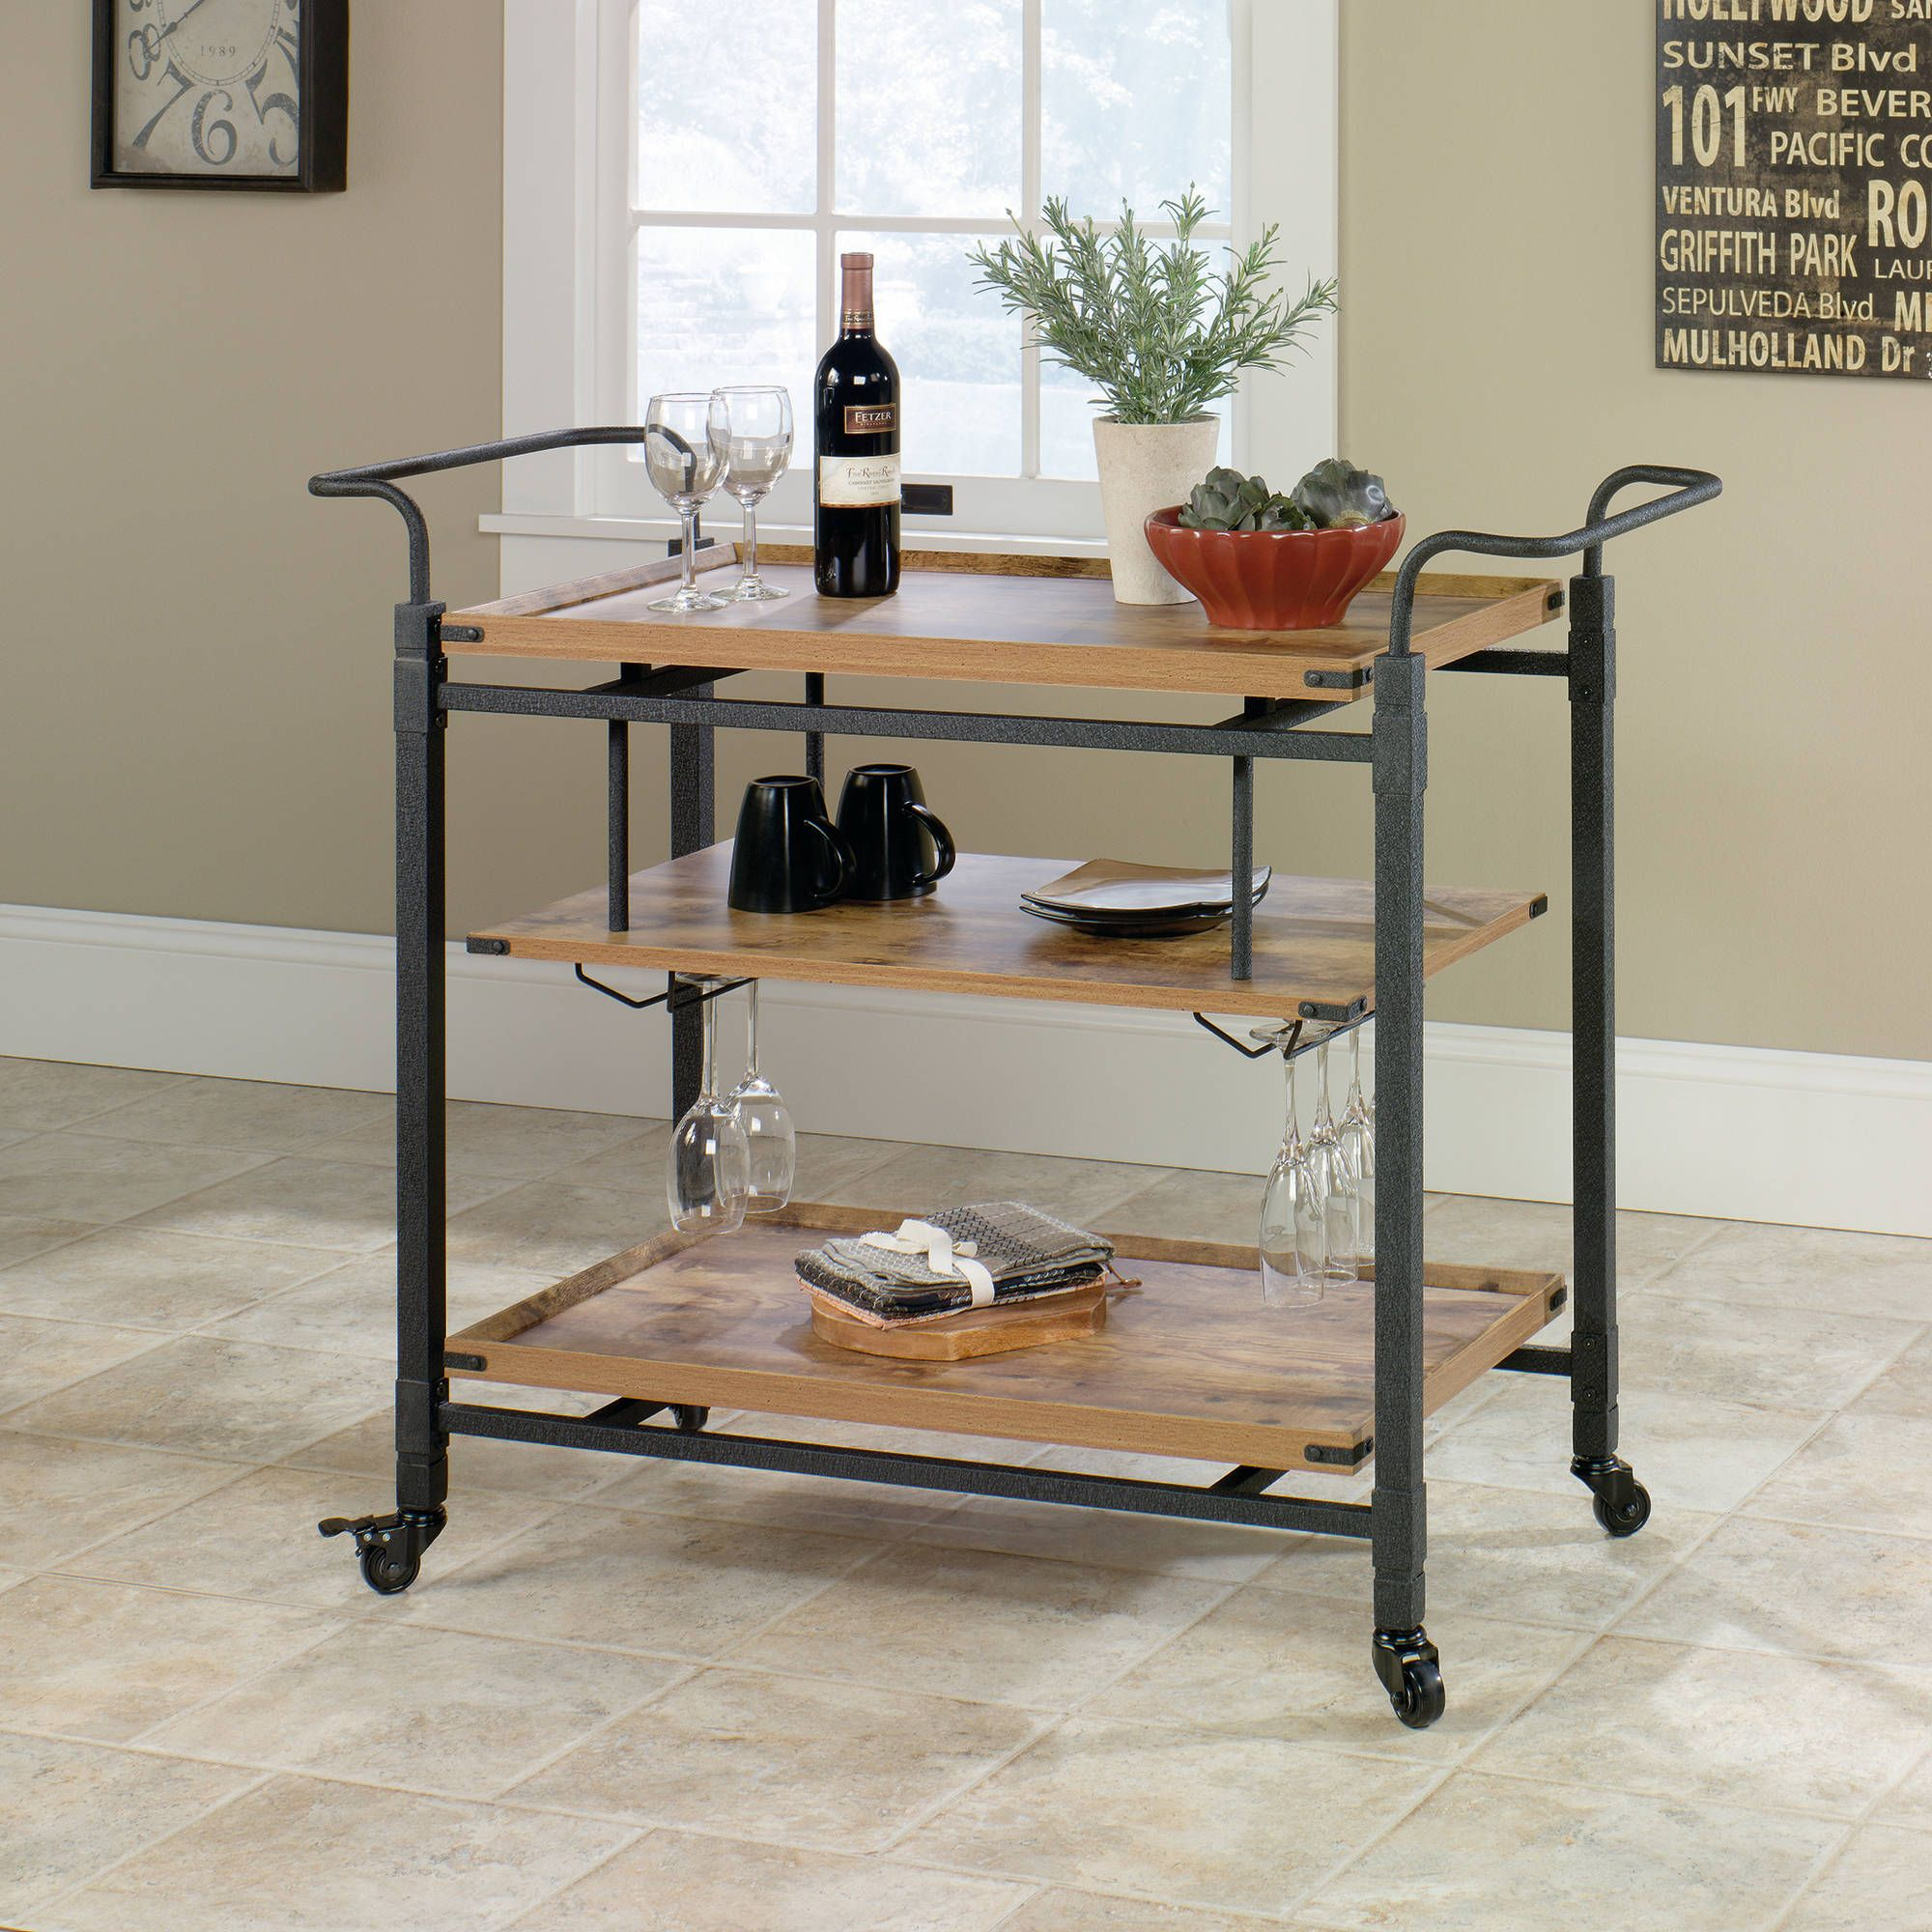 Better Homes and Gardens Rustic Country Bar Cart, Antiqued Black/Pine